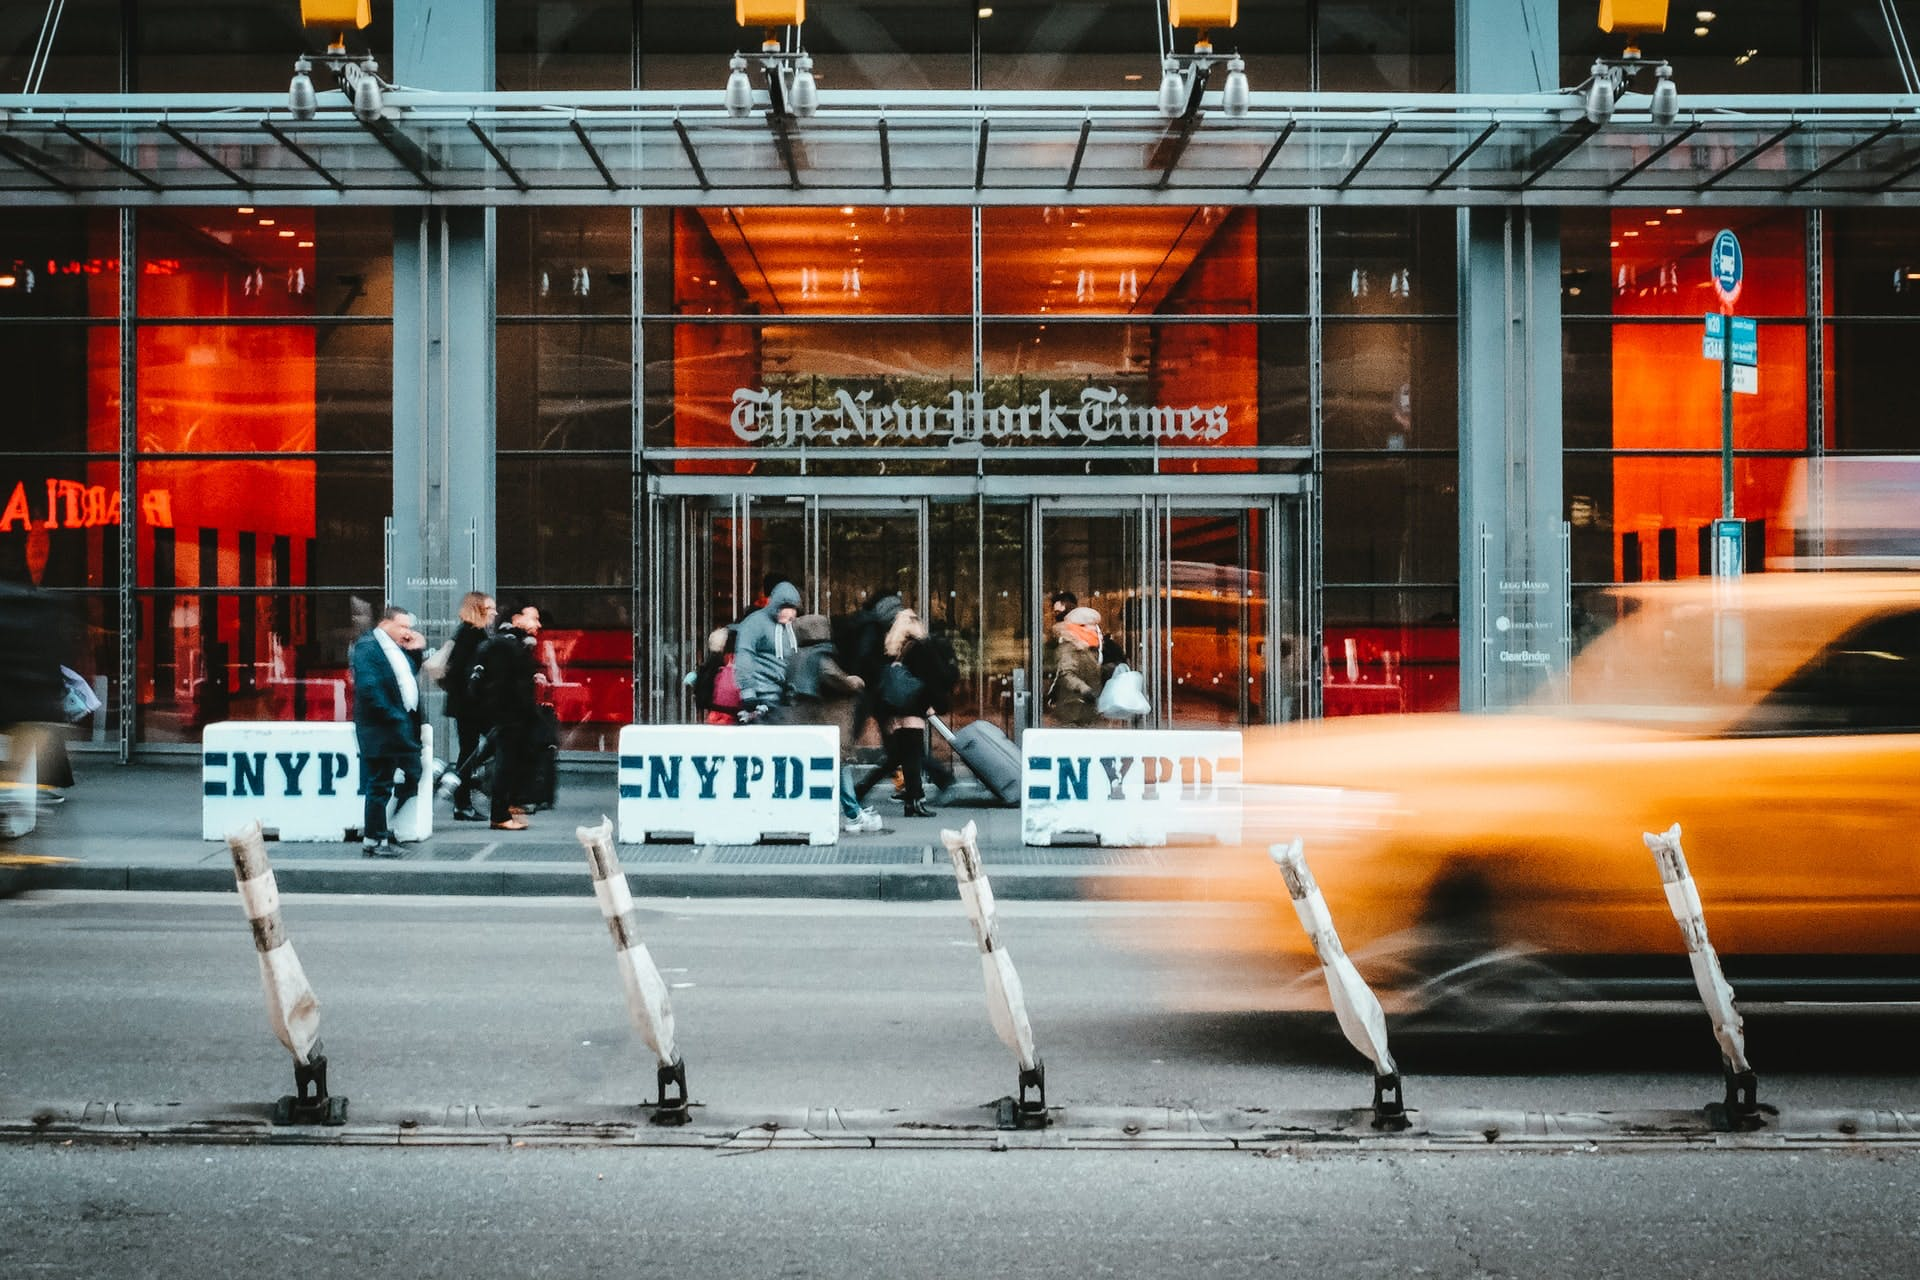 A photo of the New York Times office with a taxi passing in front.